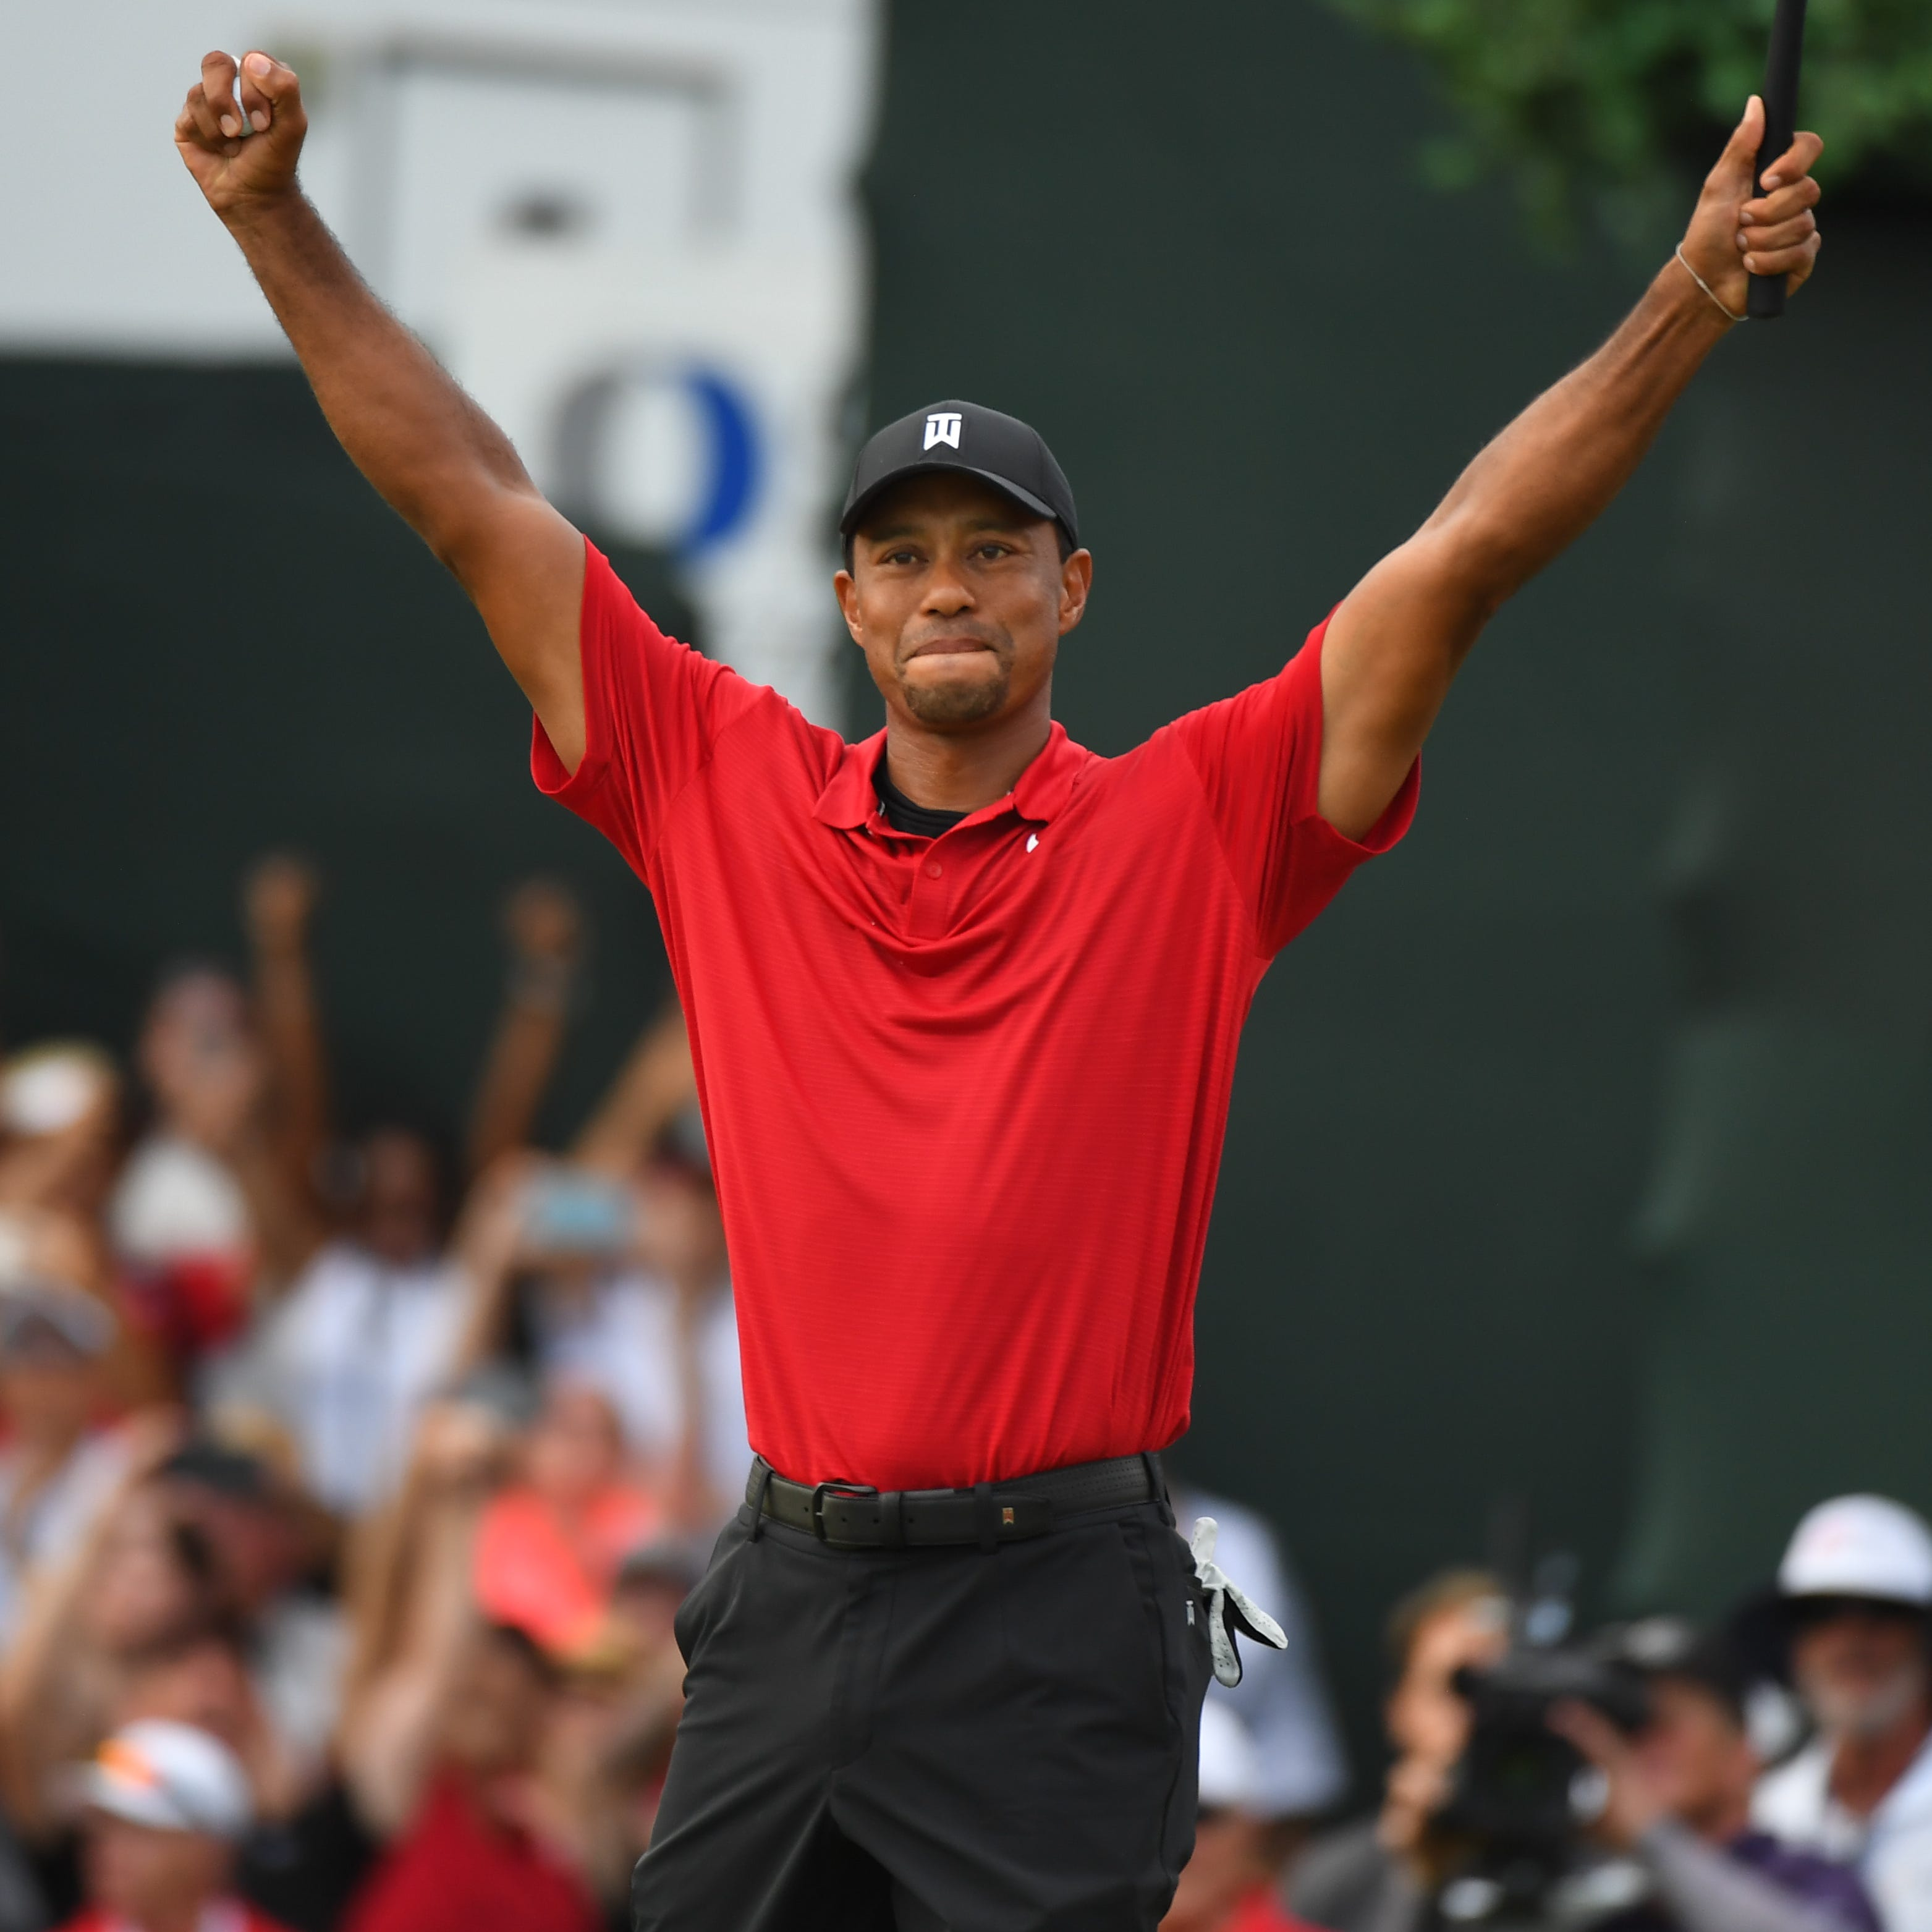 Tiger Woods reacts to winning the Tour Championship golf tournament at East Lake Golf Club.